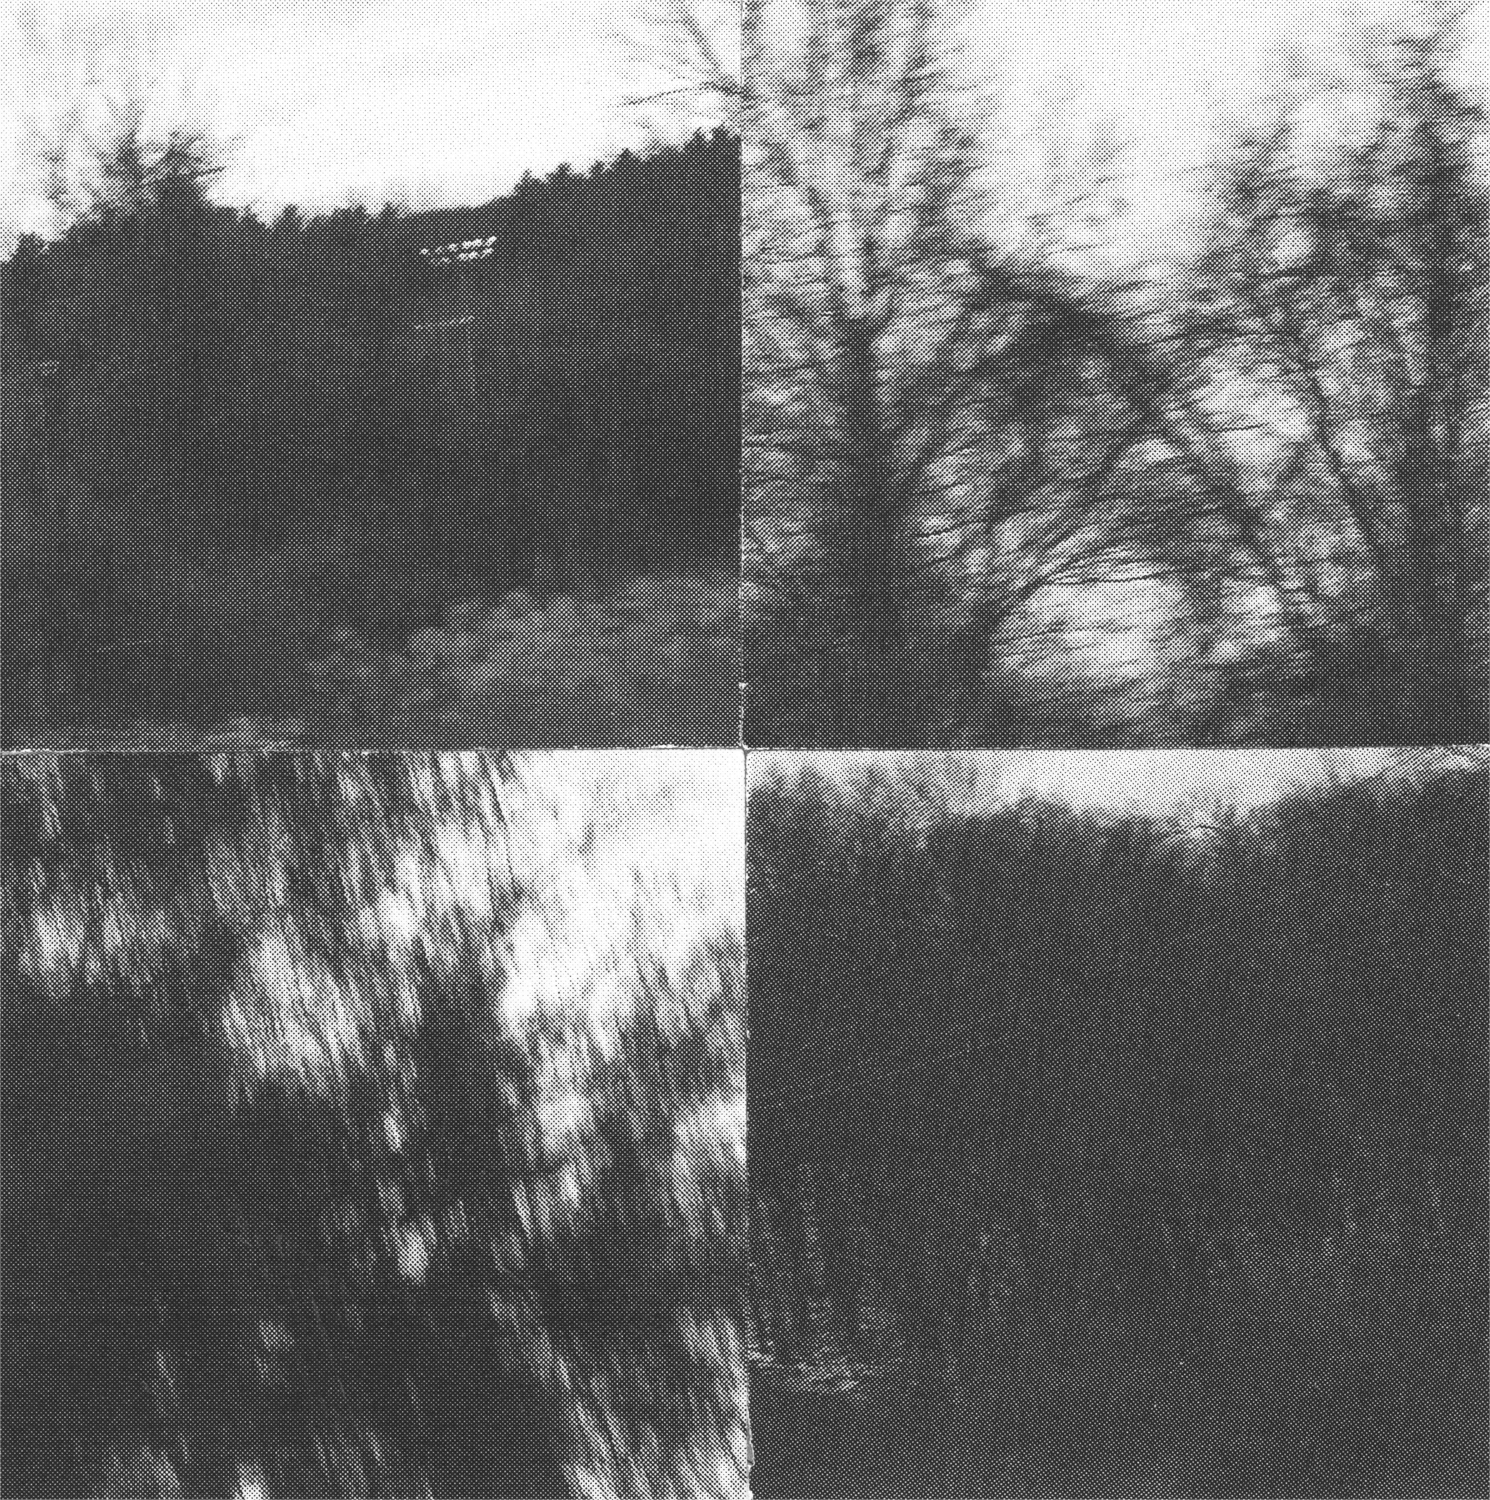 Square_Collages_Trees&TallGrass_Crop&Trim.png